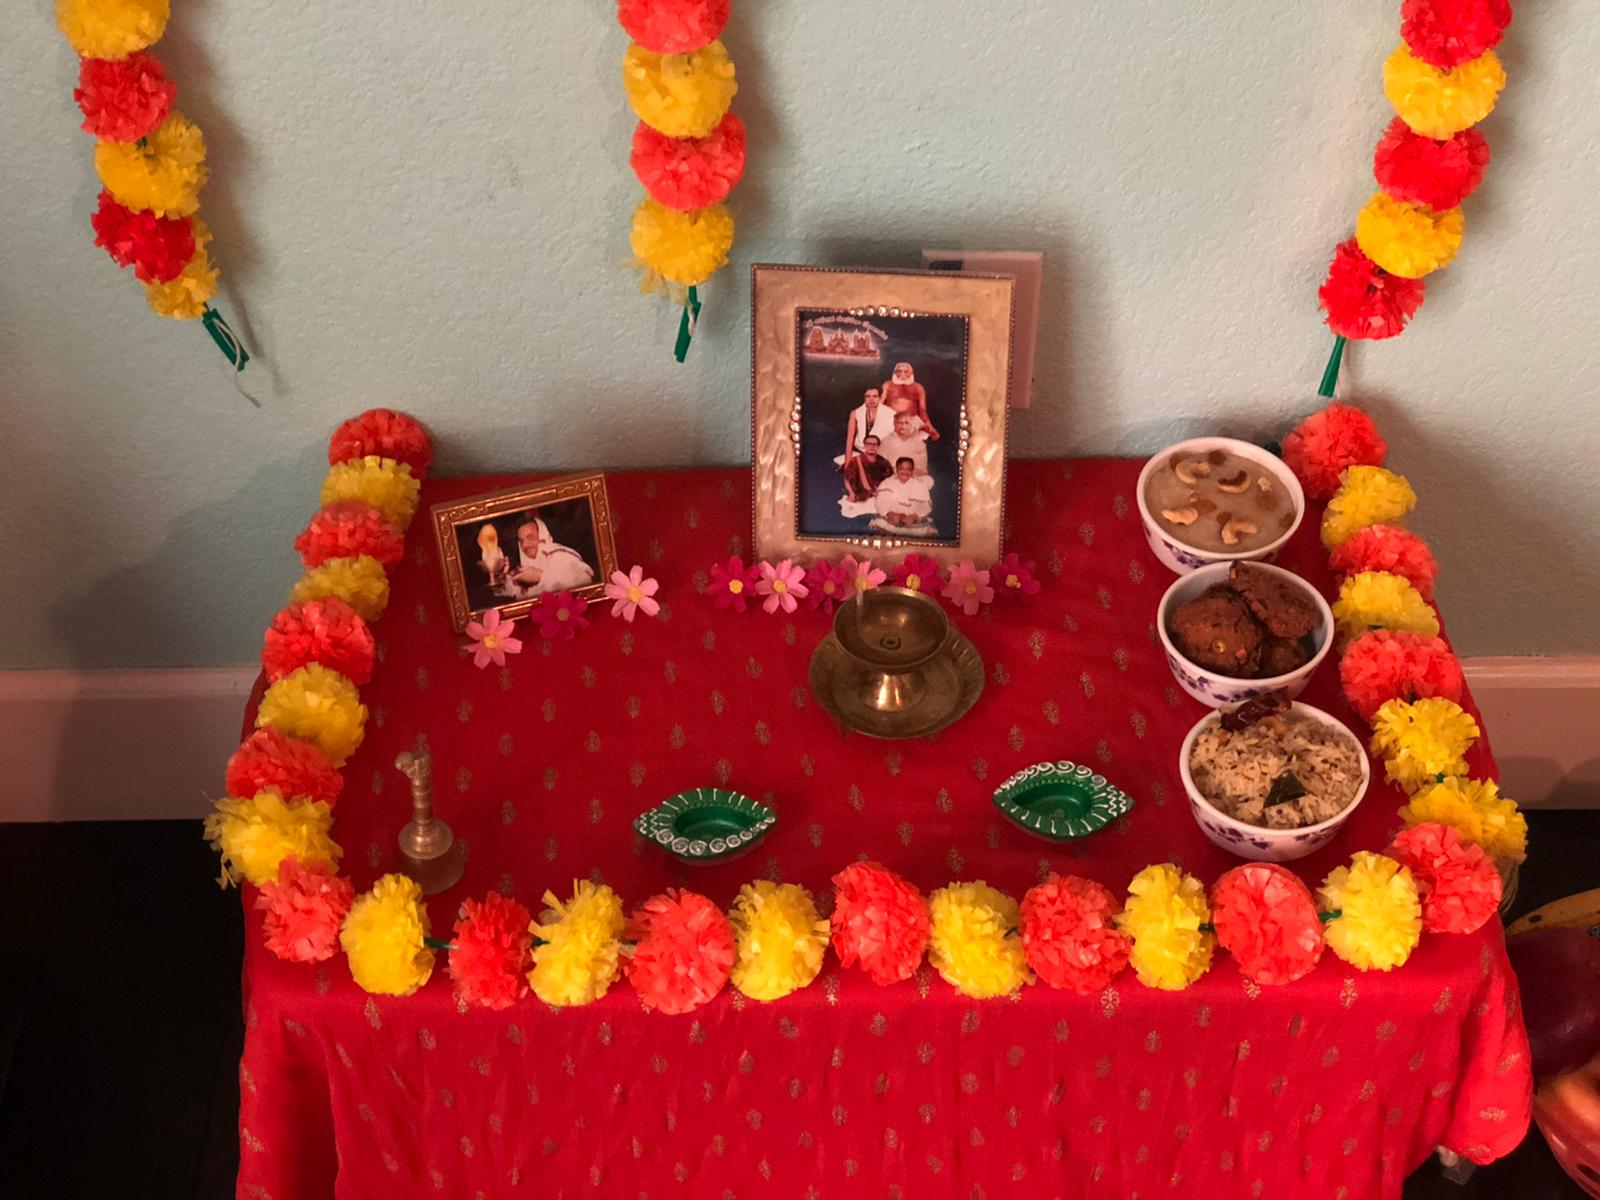 USA – March Monthly Aaradhana conducted in Online at Smt.Bhupathiraju Neelima home on 7th March 2020